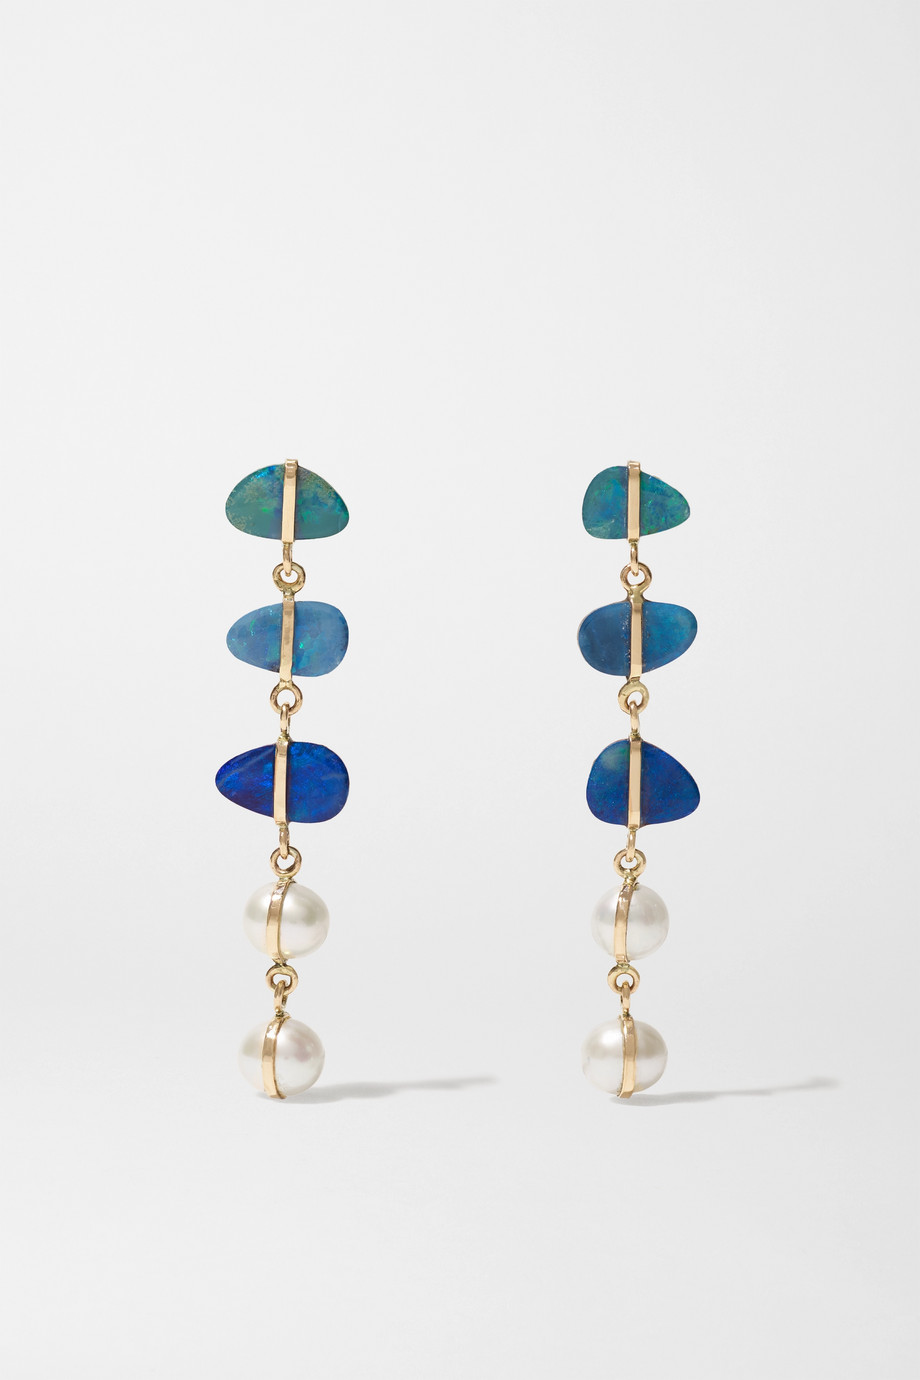 Melissa Joy Manning Levity 14-karat gold, pearl and opal earrings